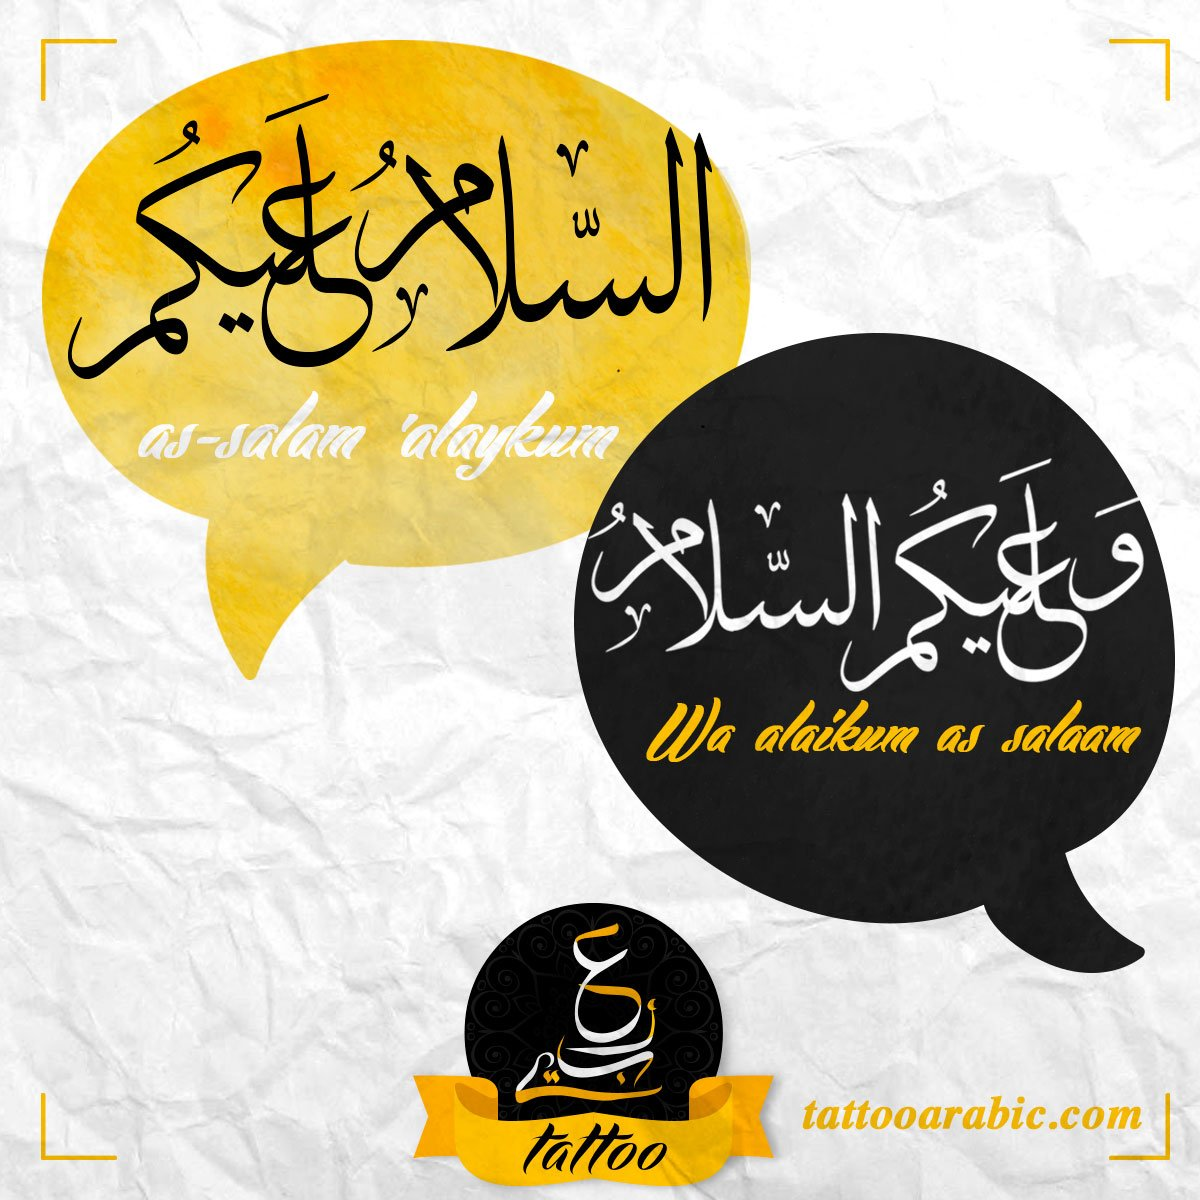 Tattoo Arabic On Twitter One Of The Most Usual Is Greetings